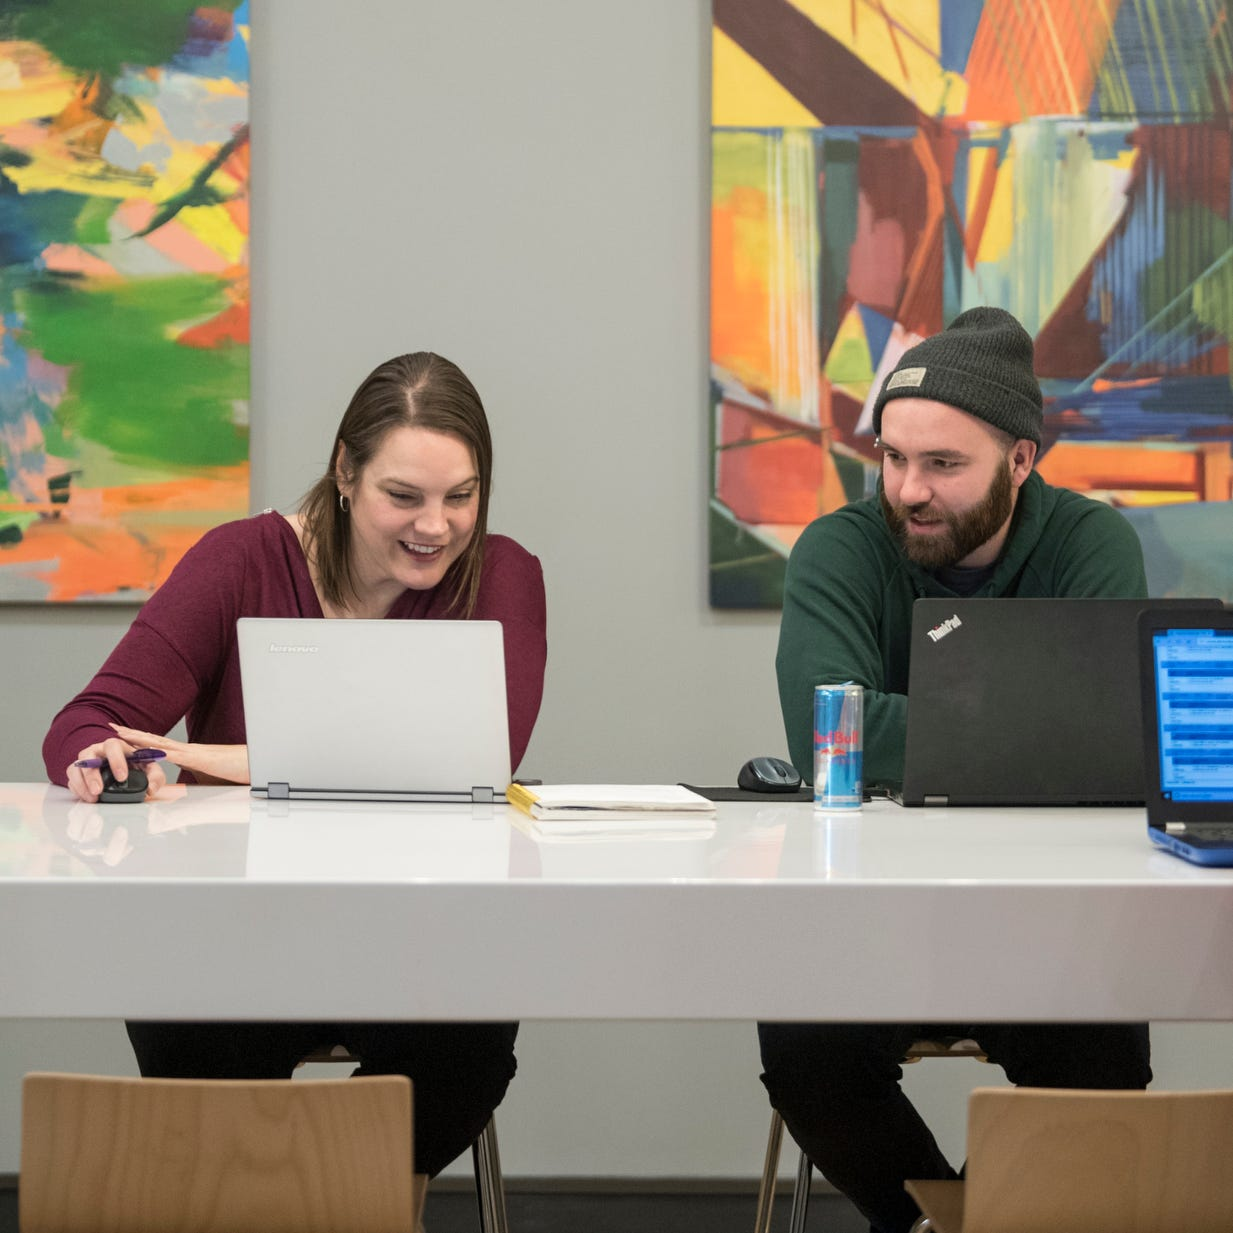 For freelancers, entrepreneurs and remote workers, Cowork Evansville is just the ticket